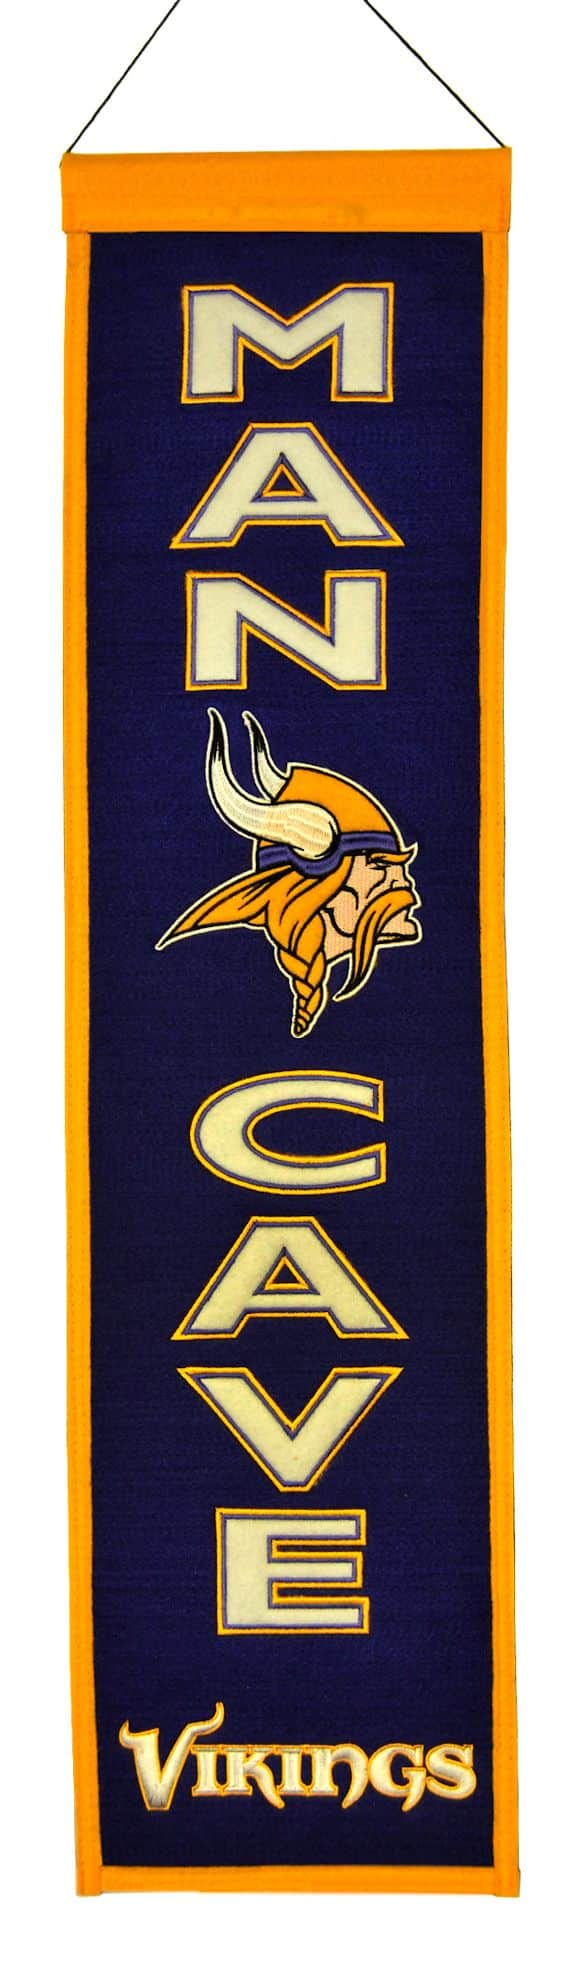 Vikings Man Cave Ideas : Minnesota vikings wool man cave banner detroit game gear